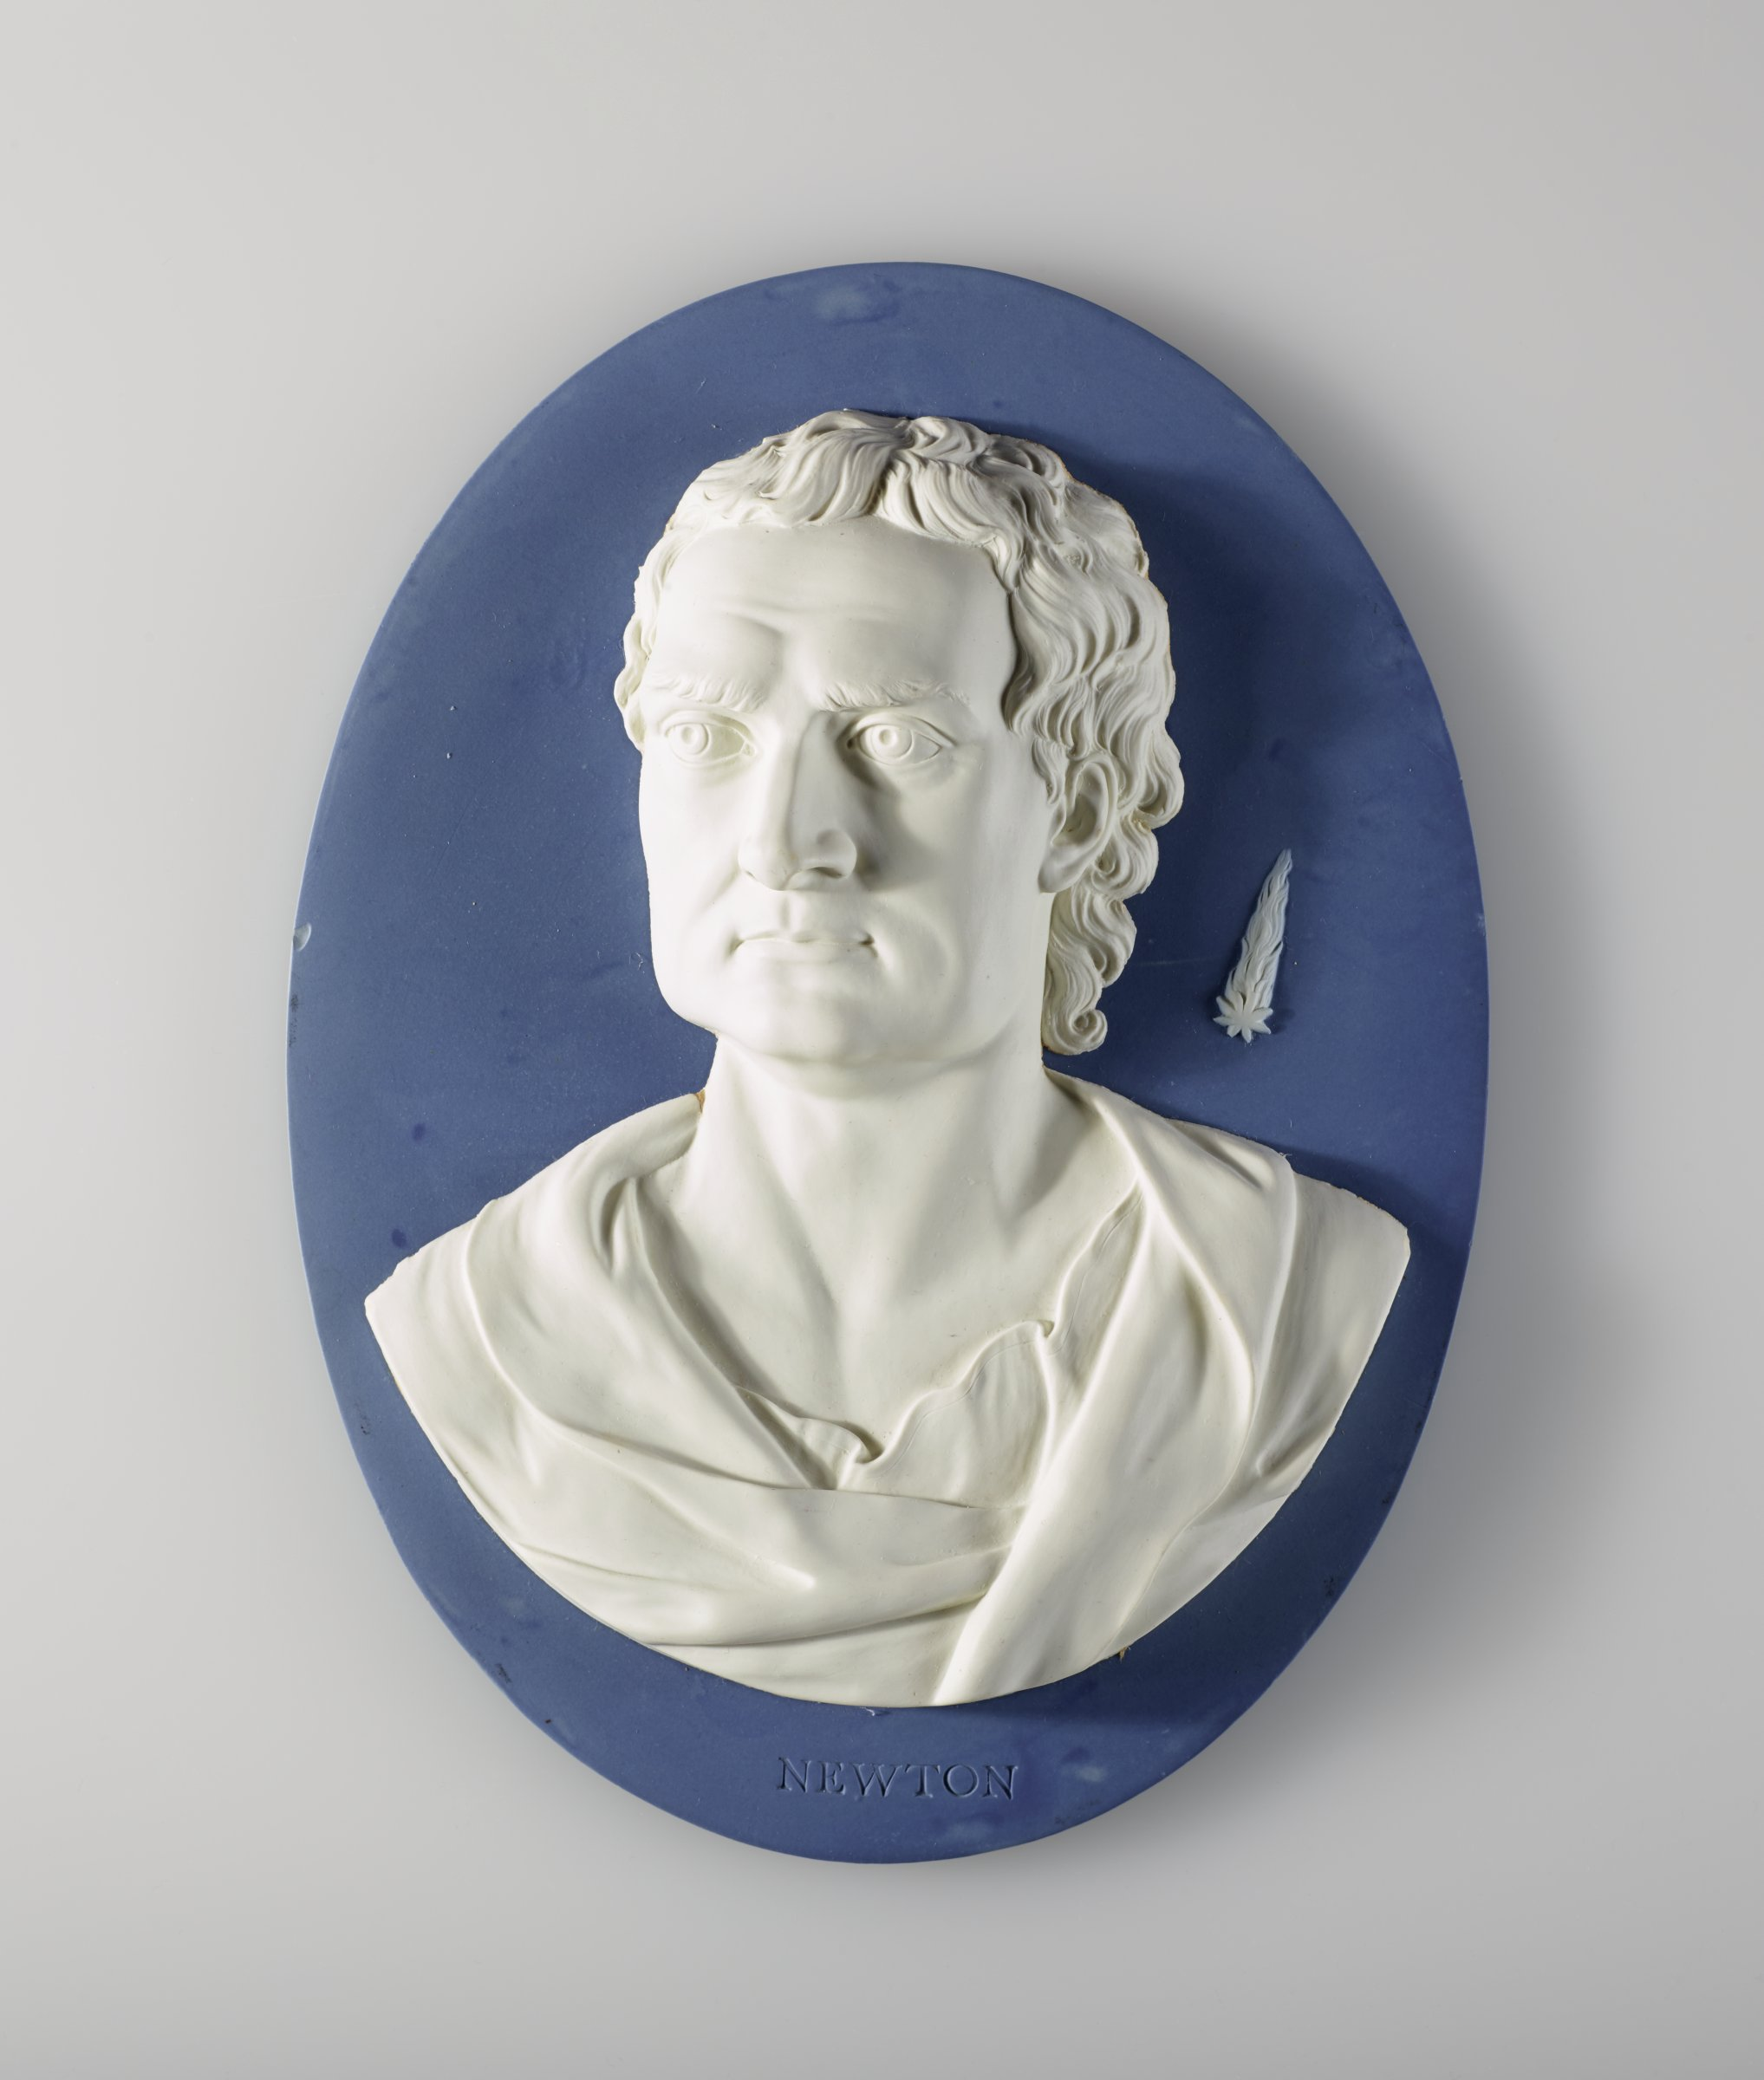 Large, heavy oval portrait medallion of light blue jasper with blue jasper dip and white relief, with the portrait of Sir Isaac Newton (1643-1727), English mathematician, astronomer and physicist, in classical drapery facing almost front, behind him in white relief Newton's comet of 1680, the first comet discovered by telescope.